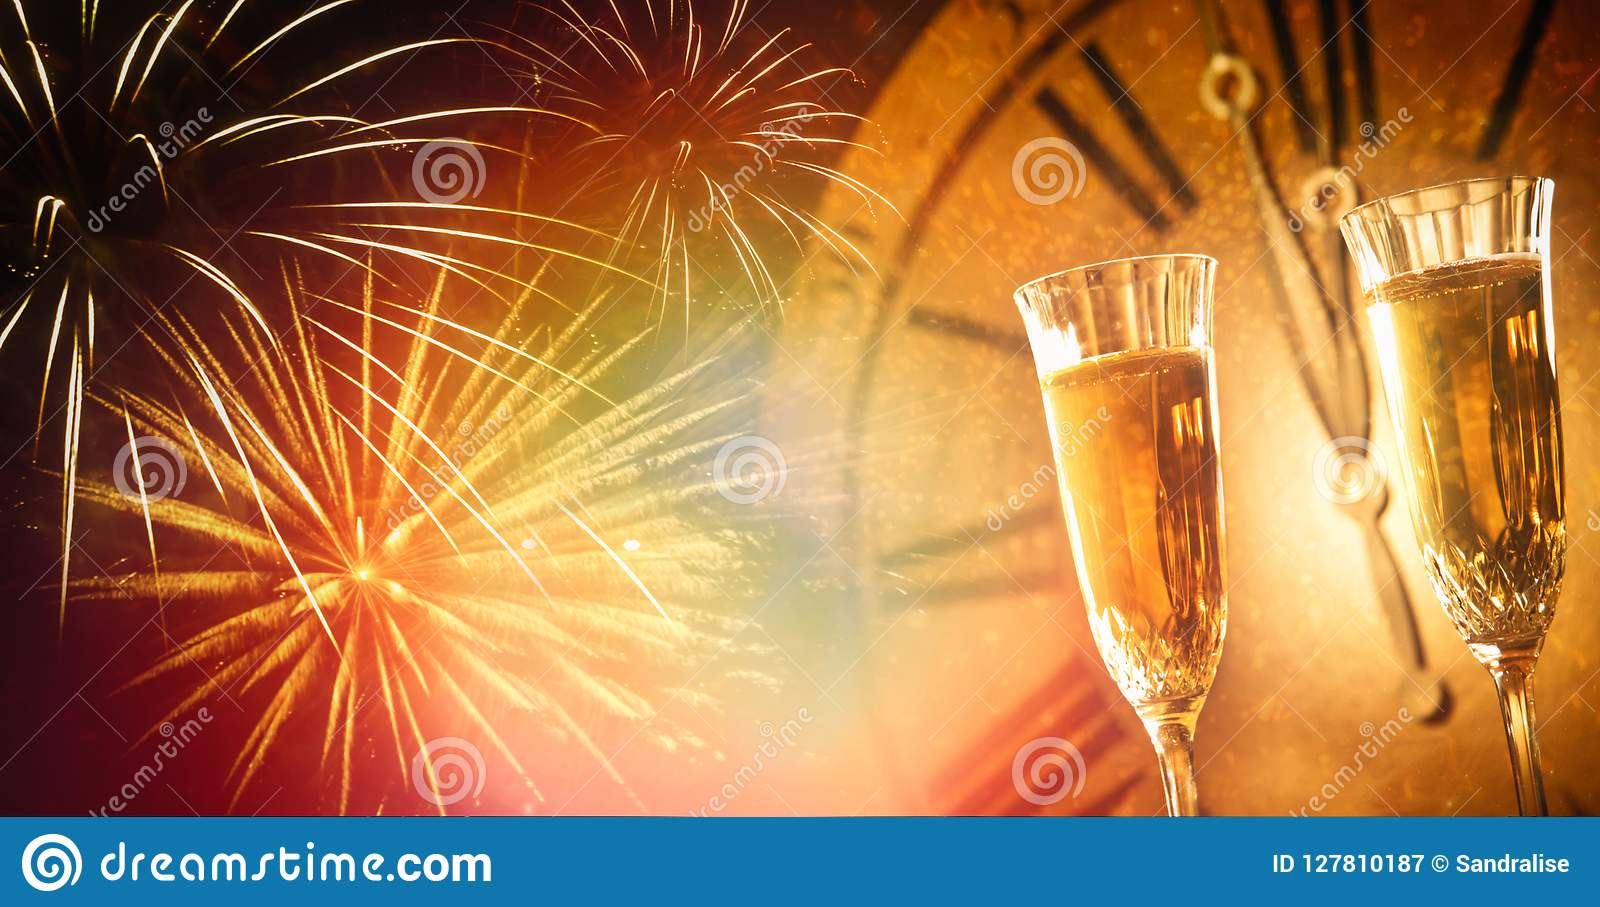 Champagne glasses against holiday lights and clock close at midnight